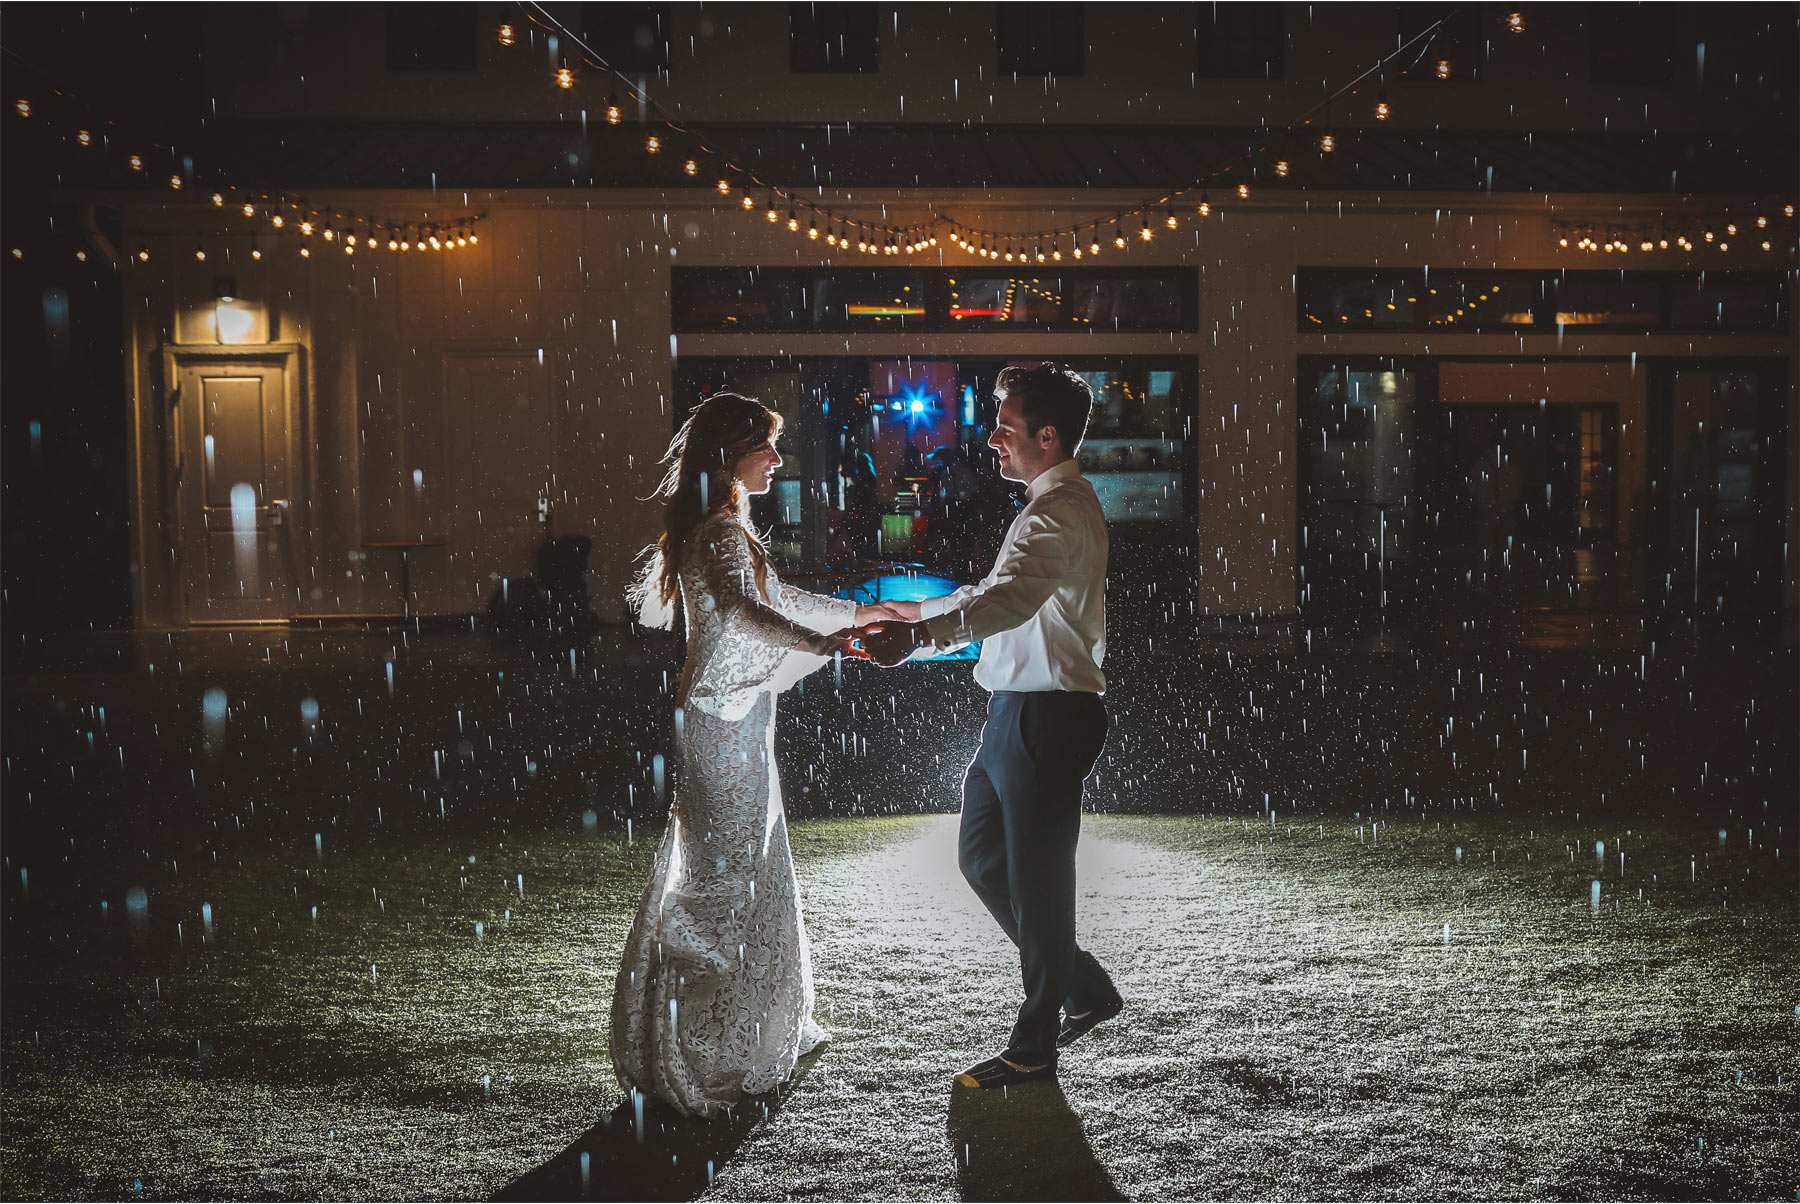 21-Minneapolis-Minnesota-Wedding-Photography-by-Andrew-Vick-Photography-Hutton-House-Reception-Outdoor-Night-Rain-Kelsey-and-Matt.jpg